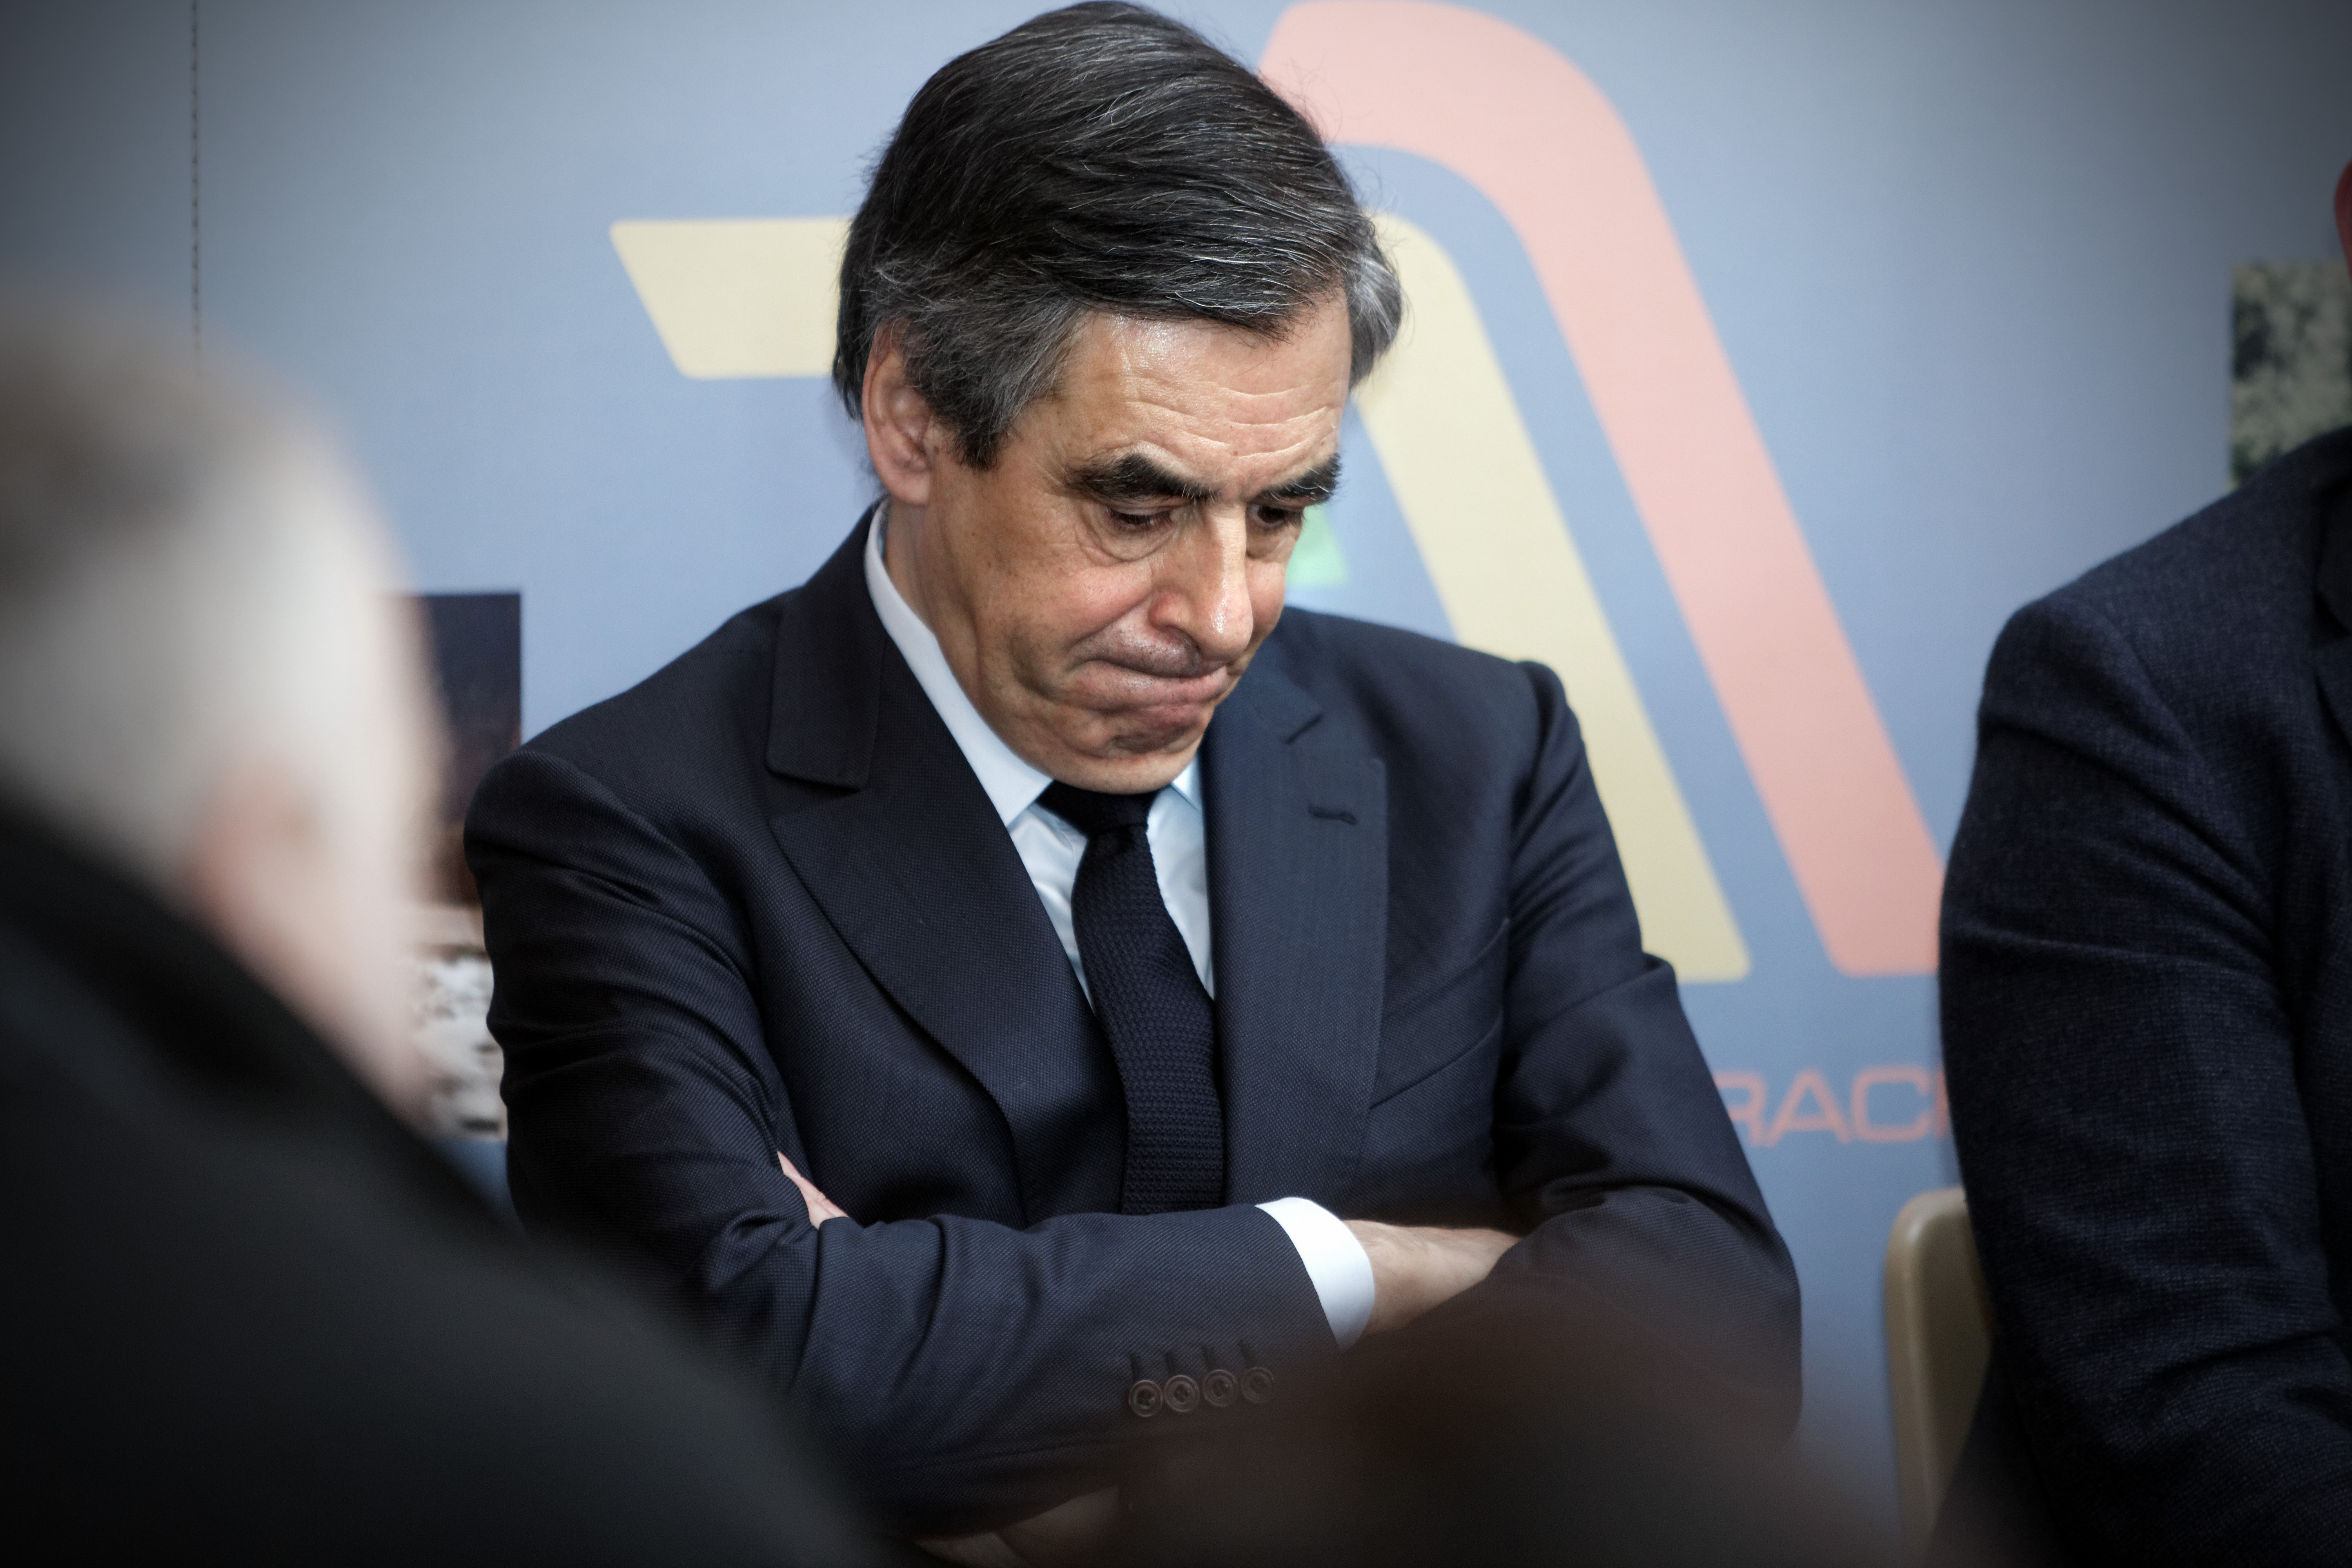 Former French Prime Minister Francois Fillon meets with farmers in Liart near Charleville-Mezieres, France on Feb. 2, 2017.